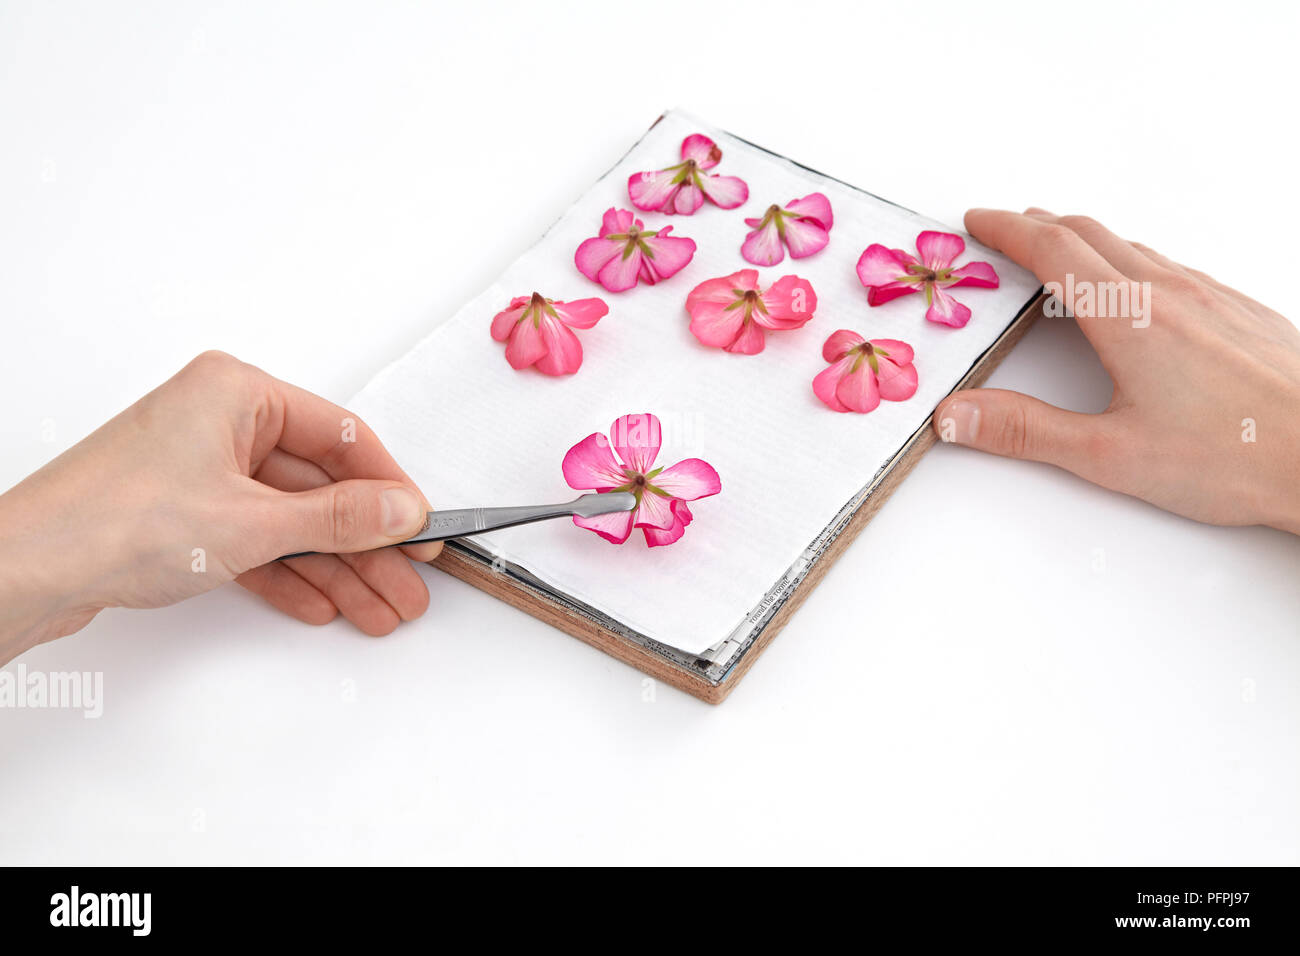 Flower press stock photos flower press stock images alamy using tweezers to place flowers on layer of absorbent paper on flower press close mightylinksfo